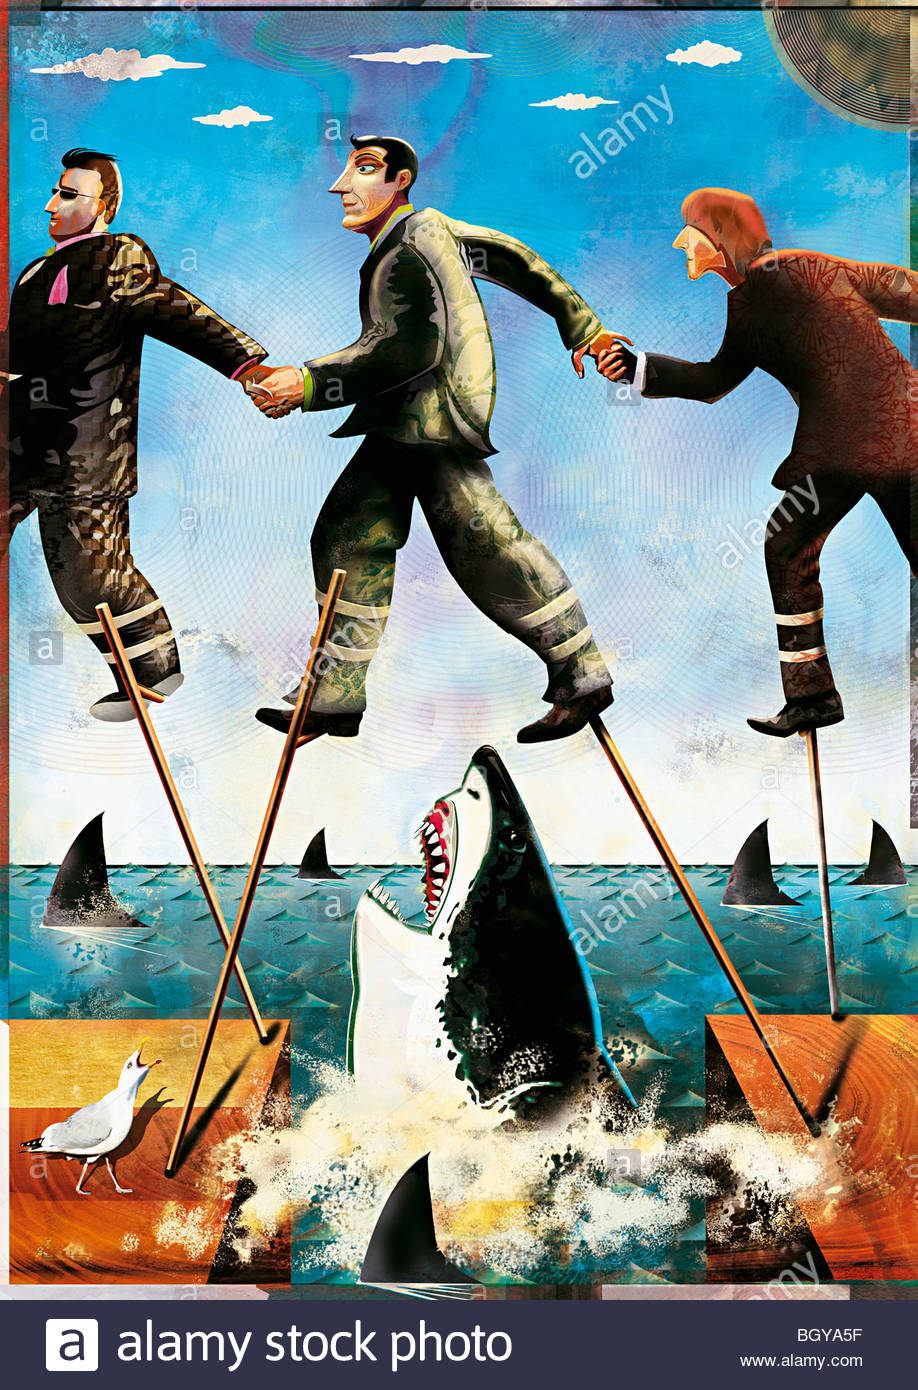 Businessmen on stilts walking through shark-infested waters - Stock Image